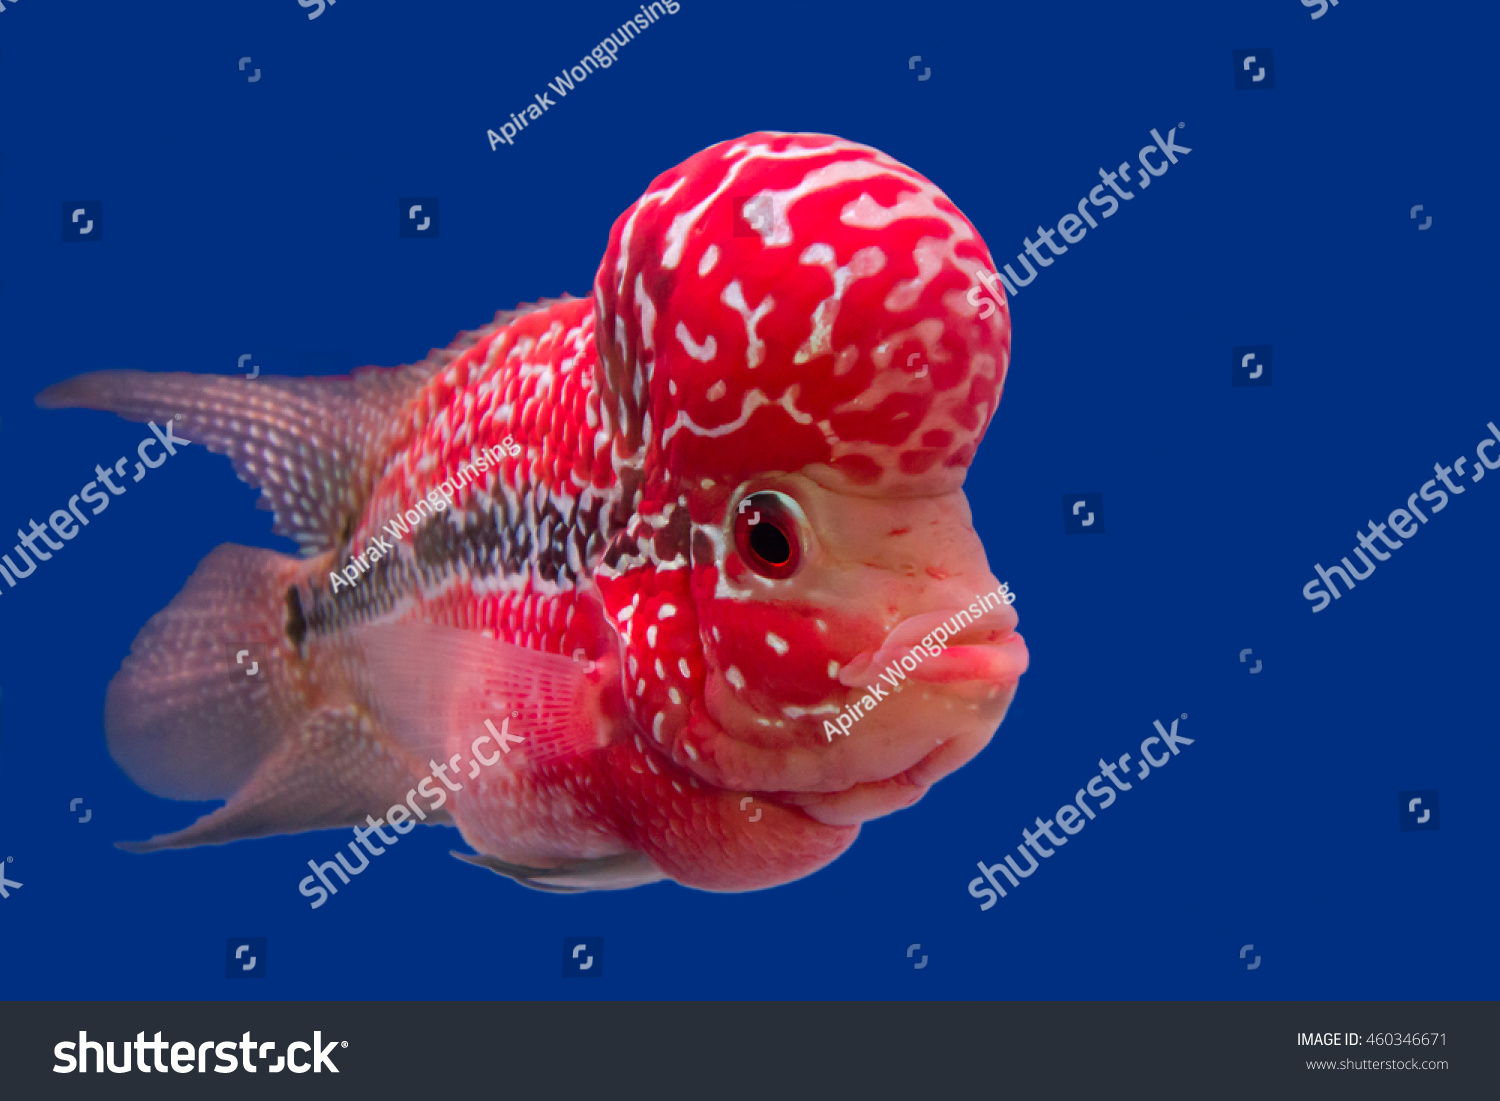 Fish Name S Flowerhorn Cichlid Stock Photo (Royalty Free) 460346671 ... for Deep Sea Fish Name  545xkb